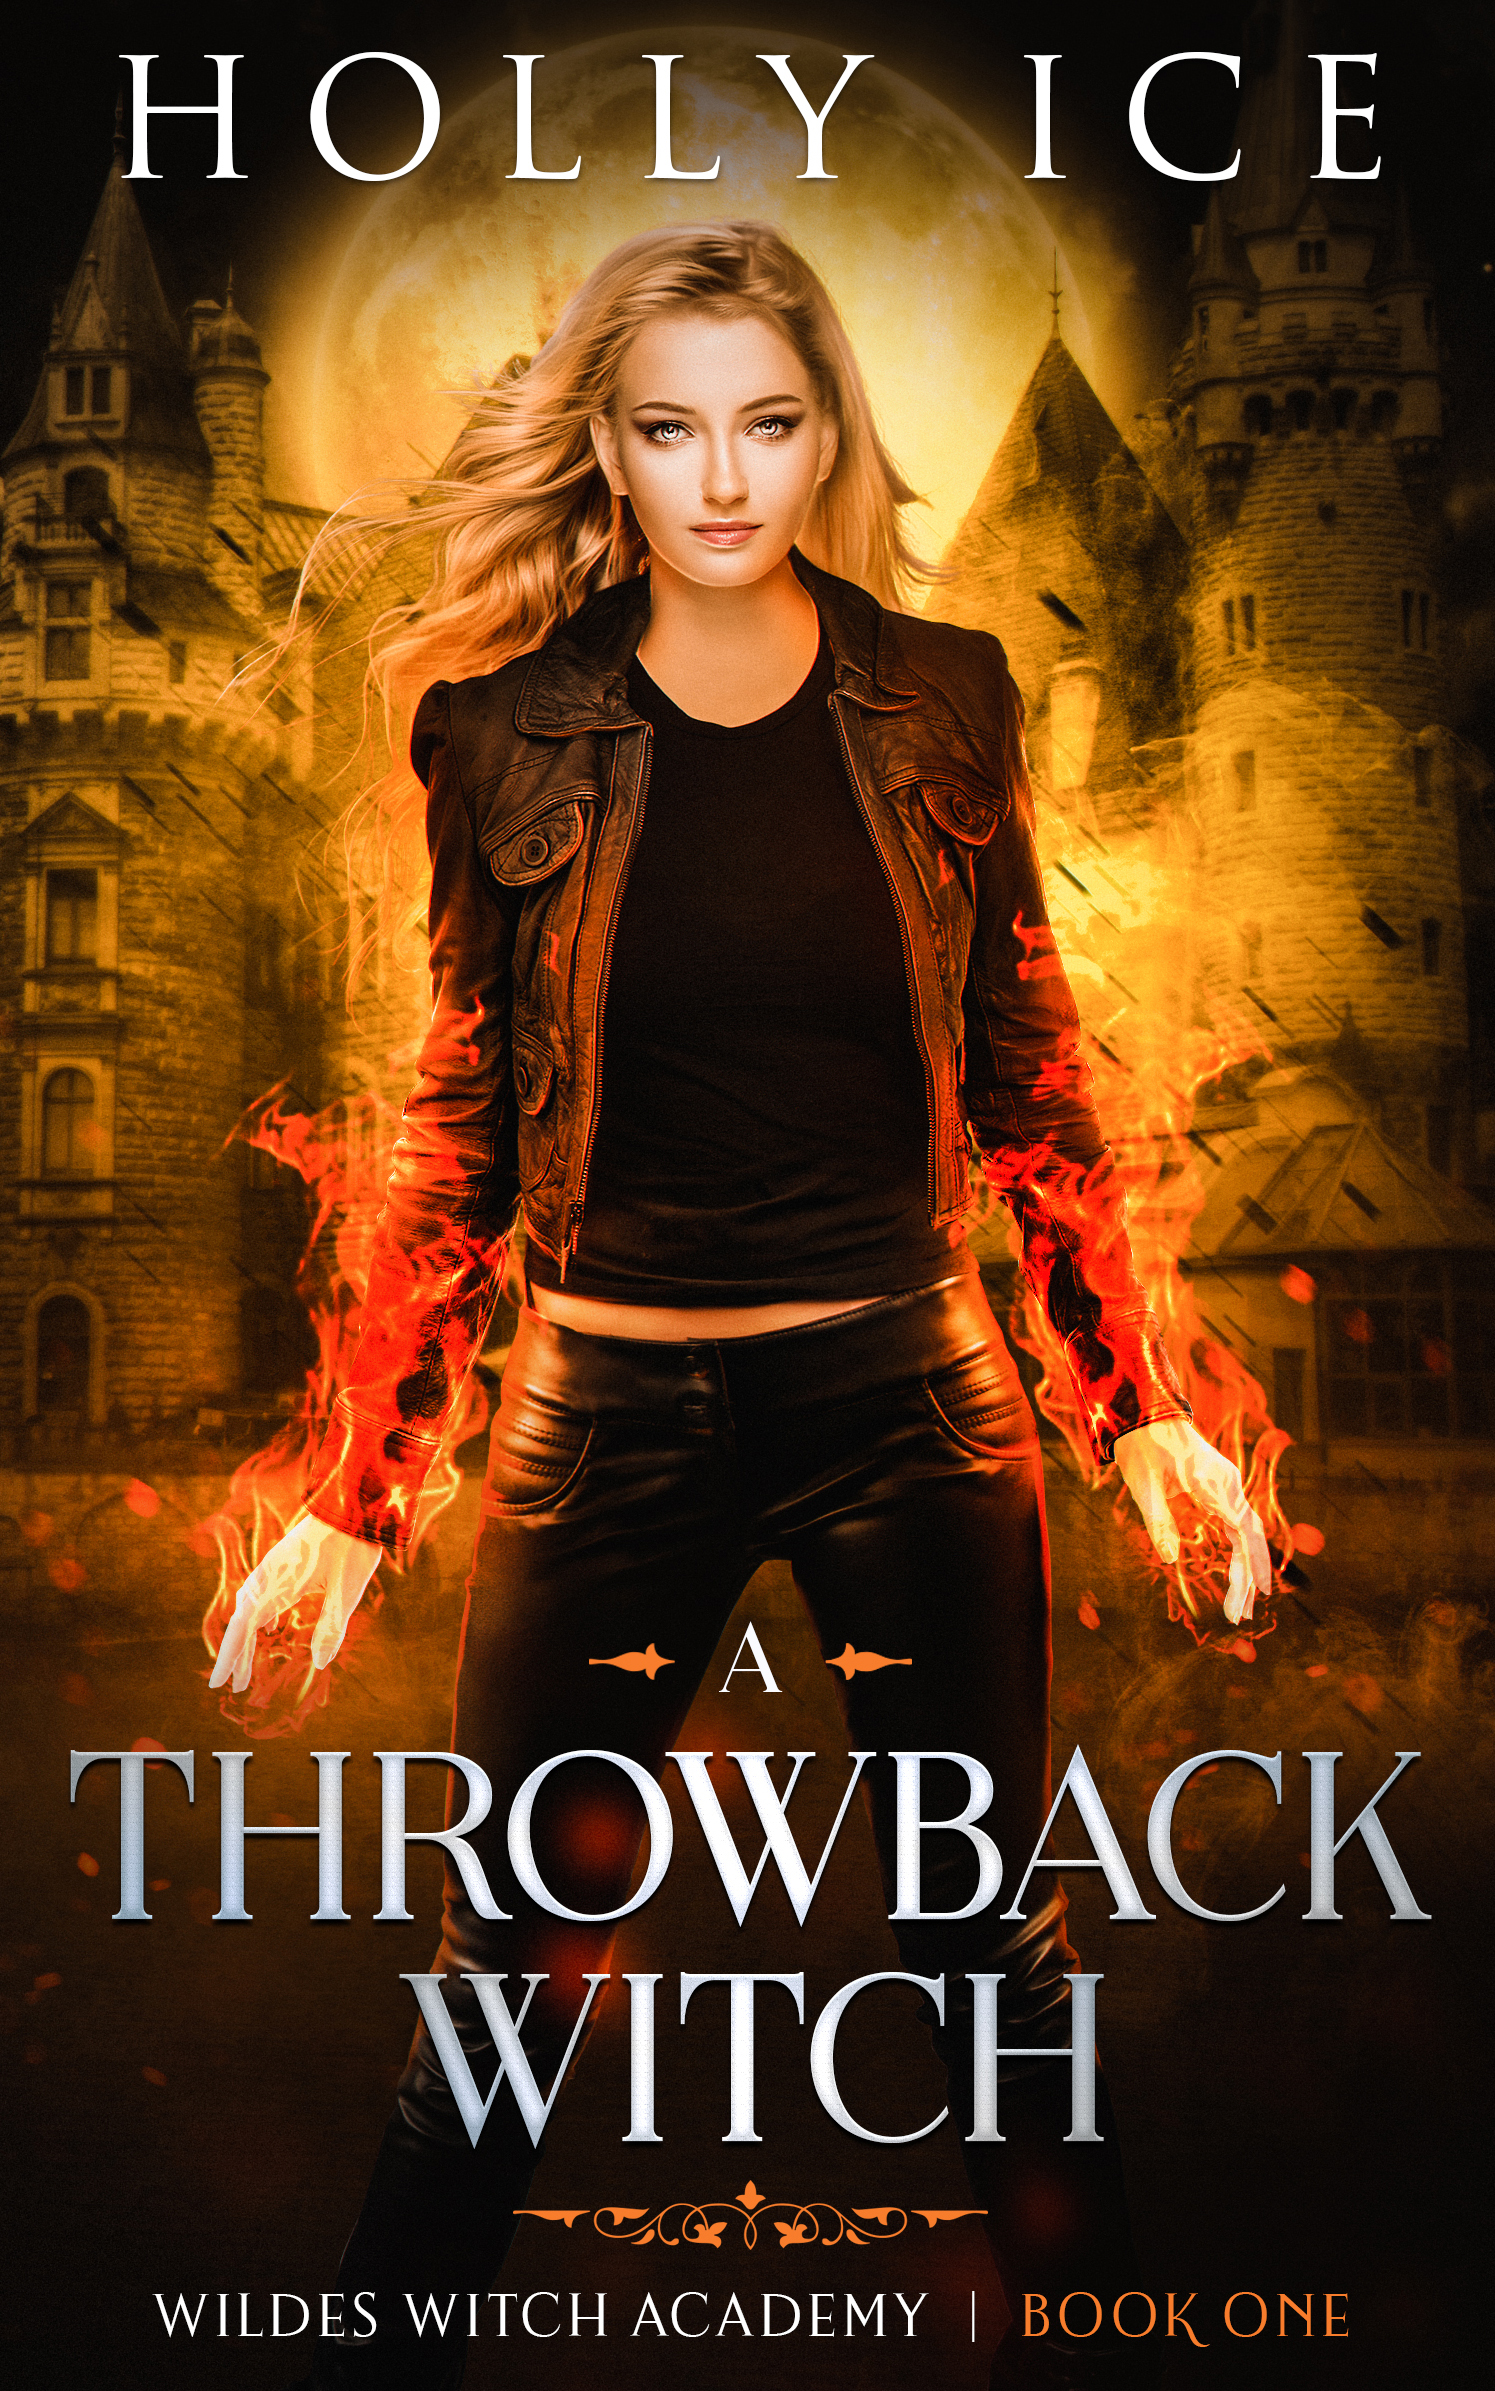 [PDF] [EPUB] A Throwback Witch (Wildes Witch Academy Book One) Download by Holly Ice